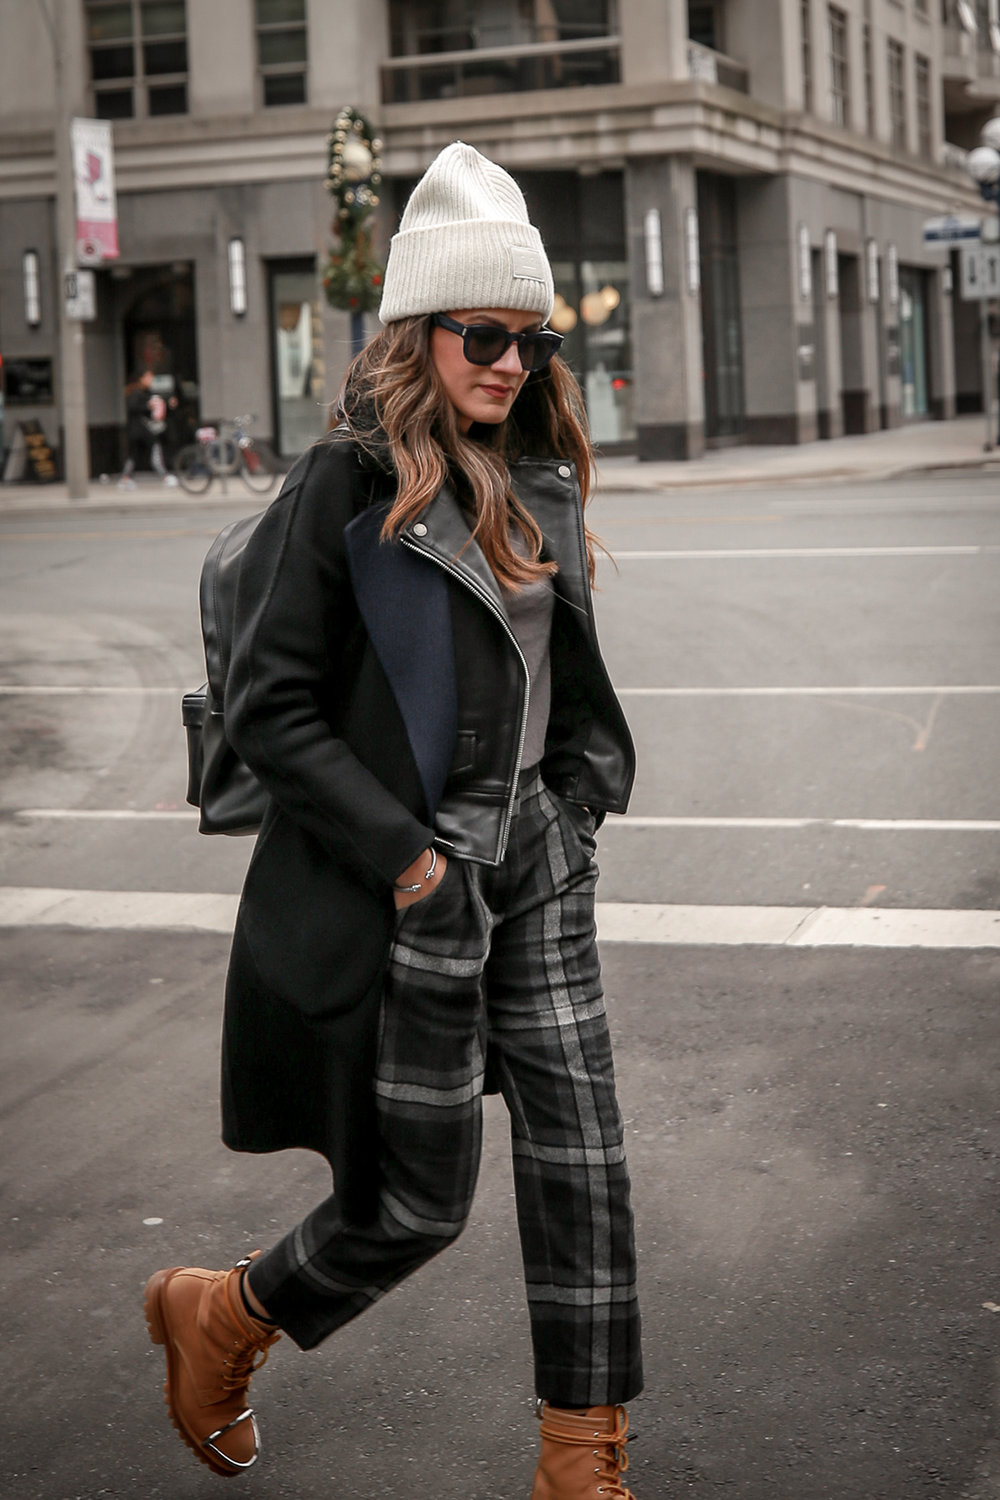 Nathalie Martin wearing Aritzia Chambery plaid pant, Rudsak Mythos leather:shearling jacket, Alexander Wang Lyndon boots, Acne Studios Pansy face beanie ivory, Saint Laurent blue square glasses, Rag & Bone wool reversible coat, woahstyle.com_4562.jpg